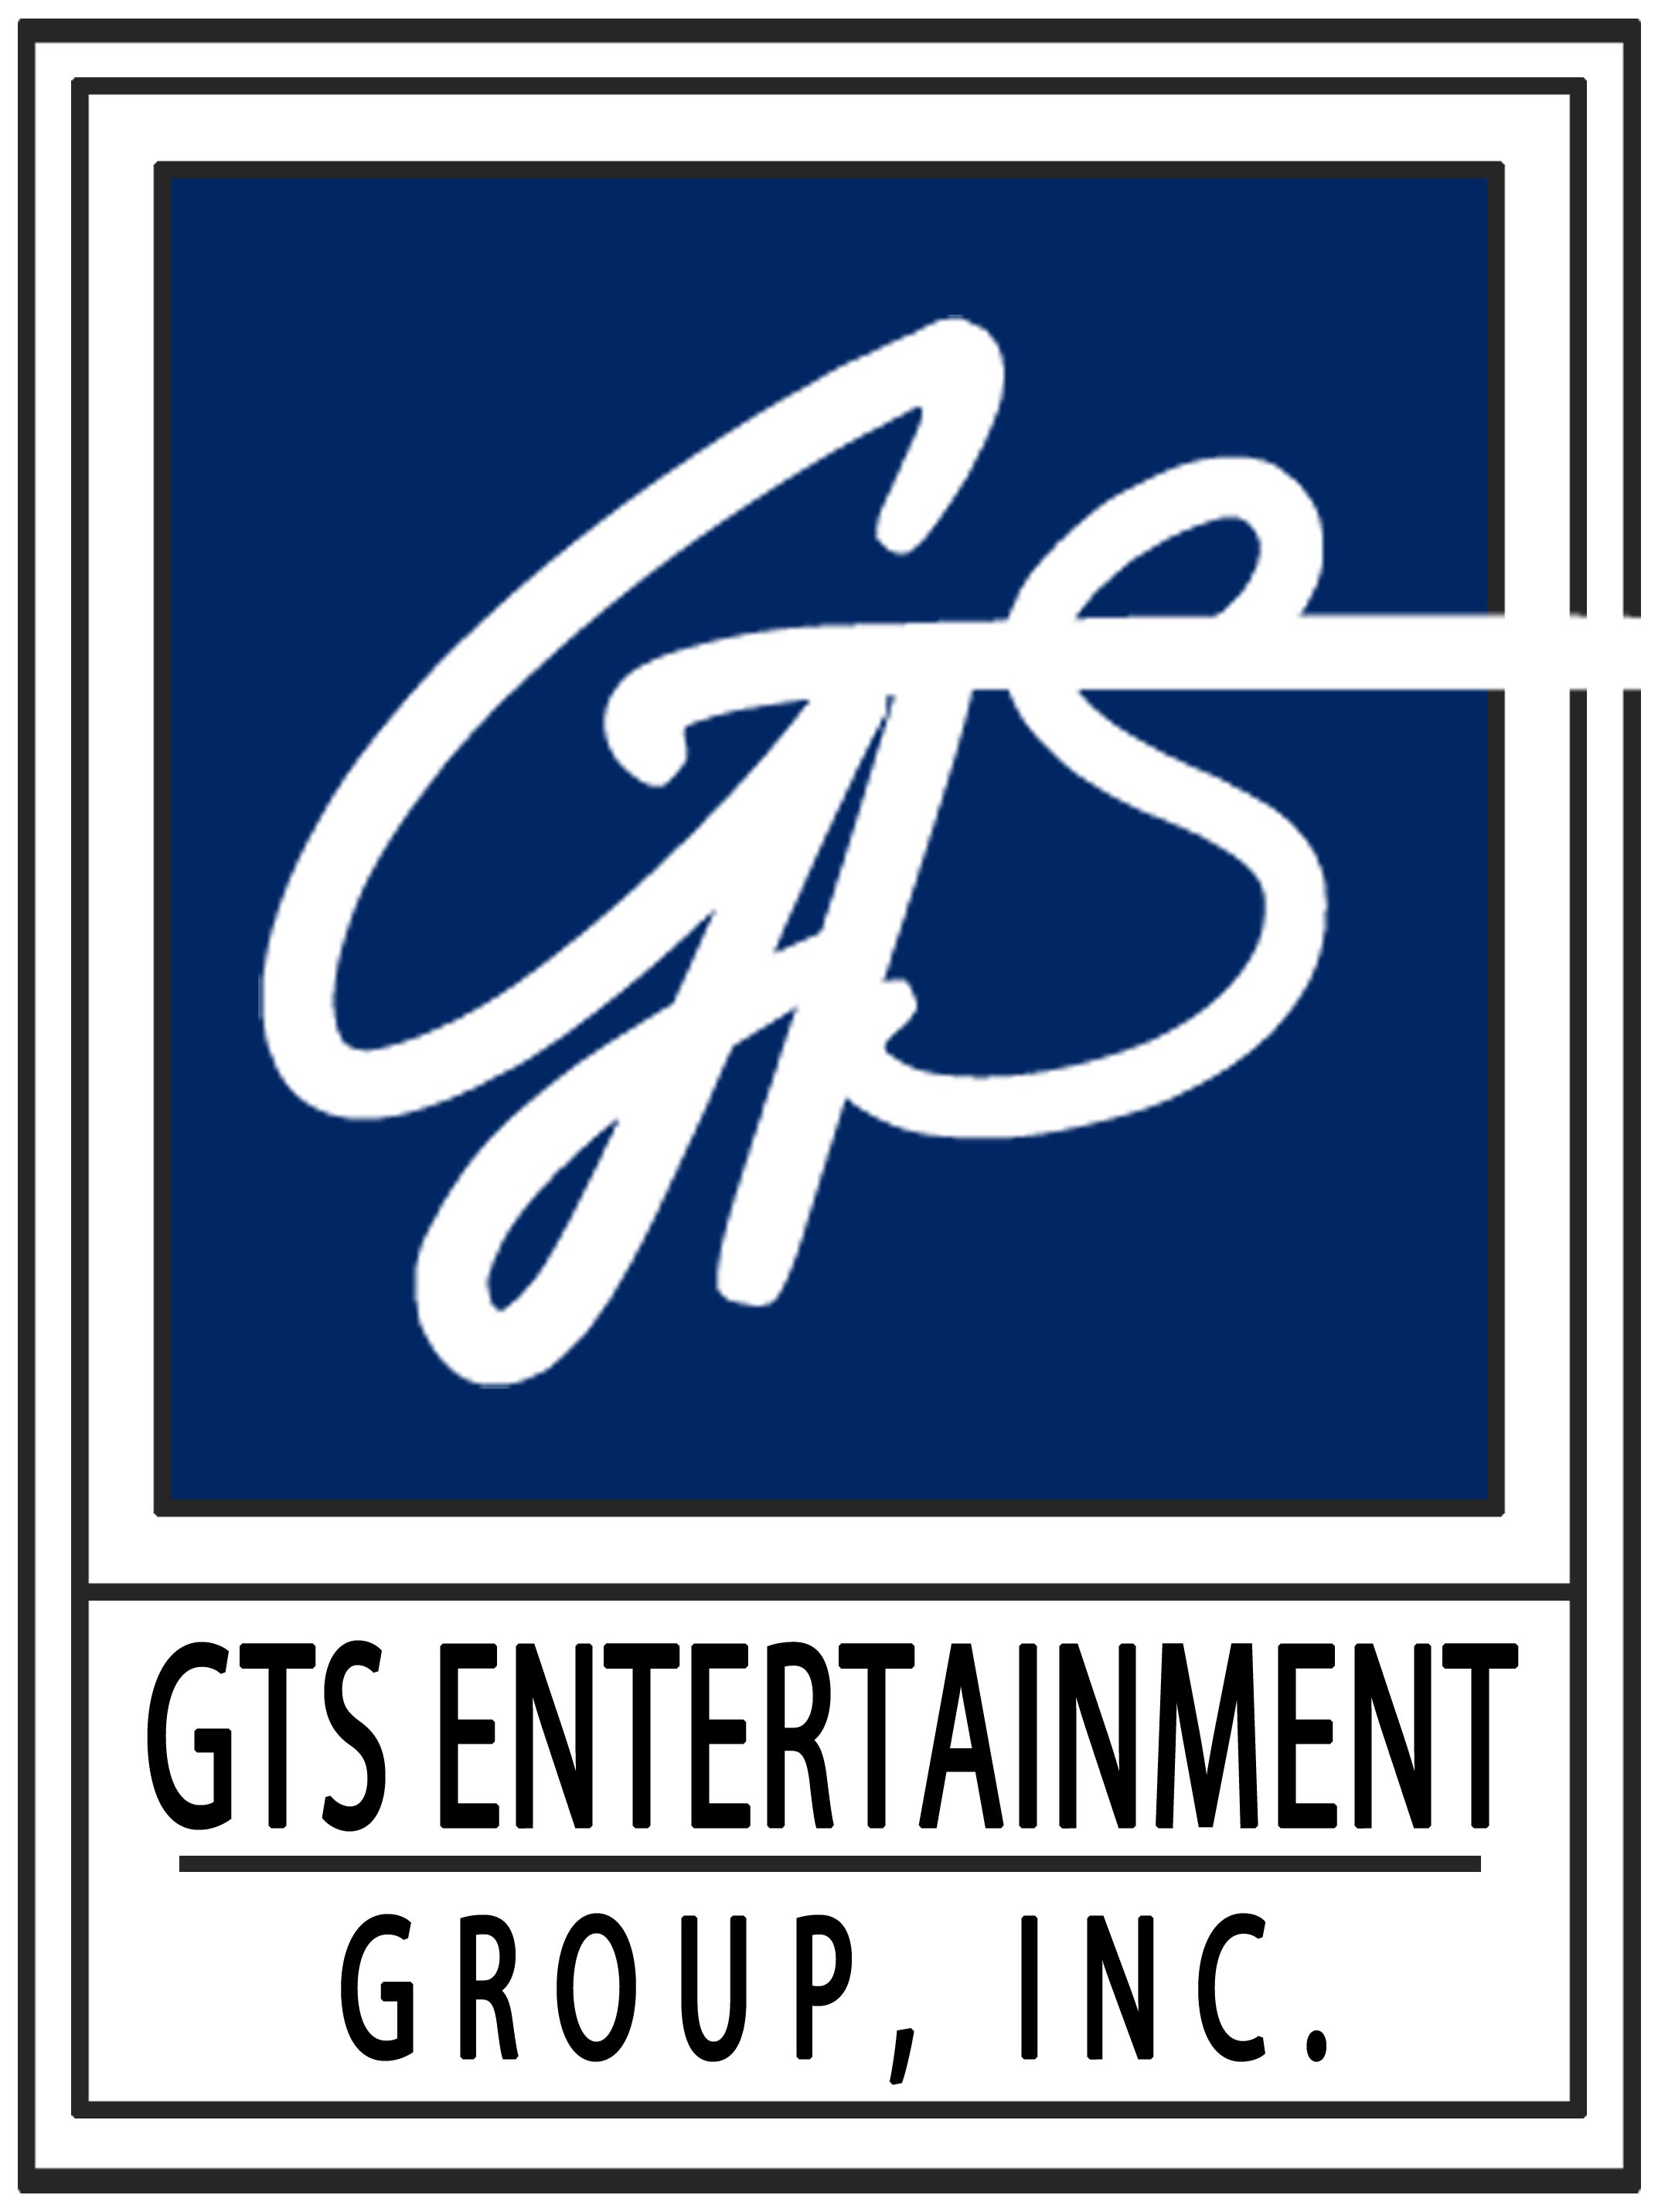 GTS Entertainment